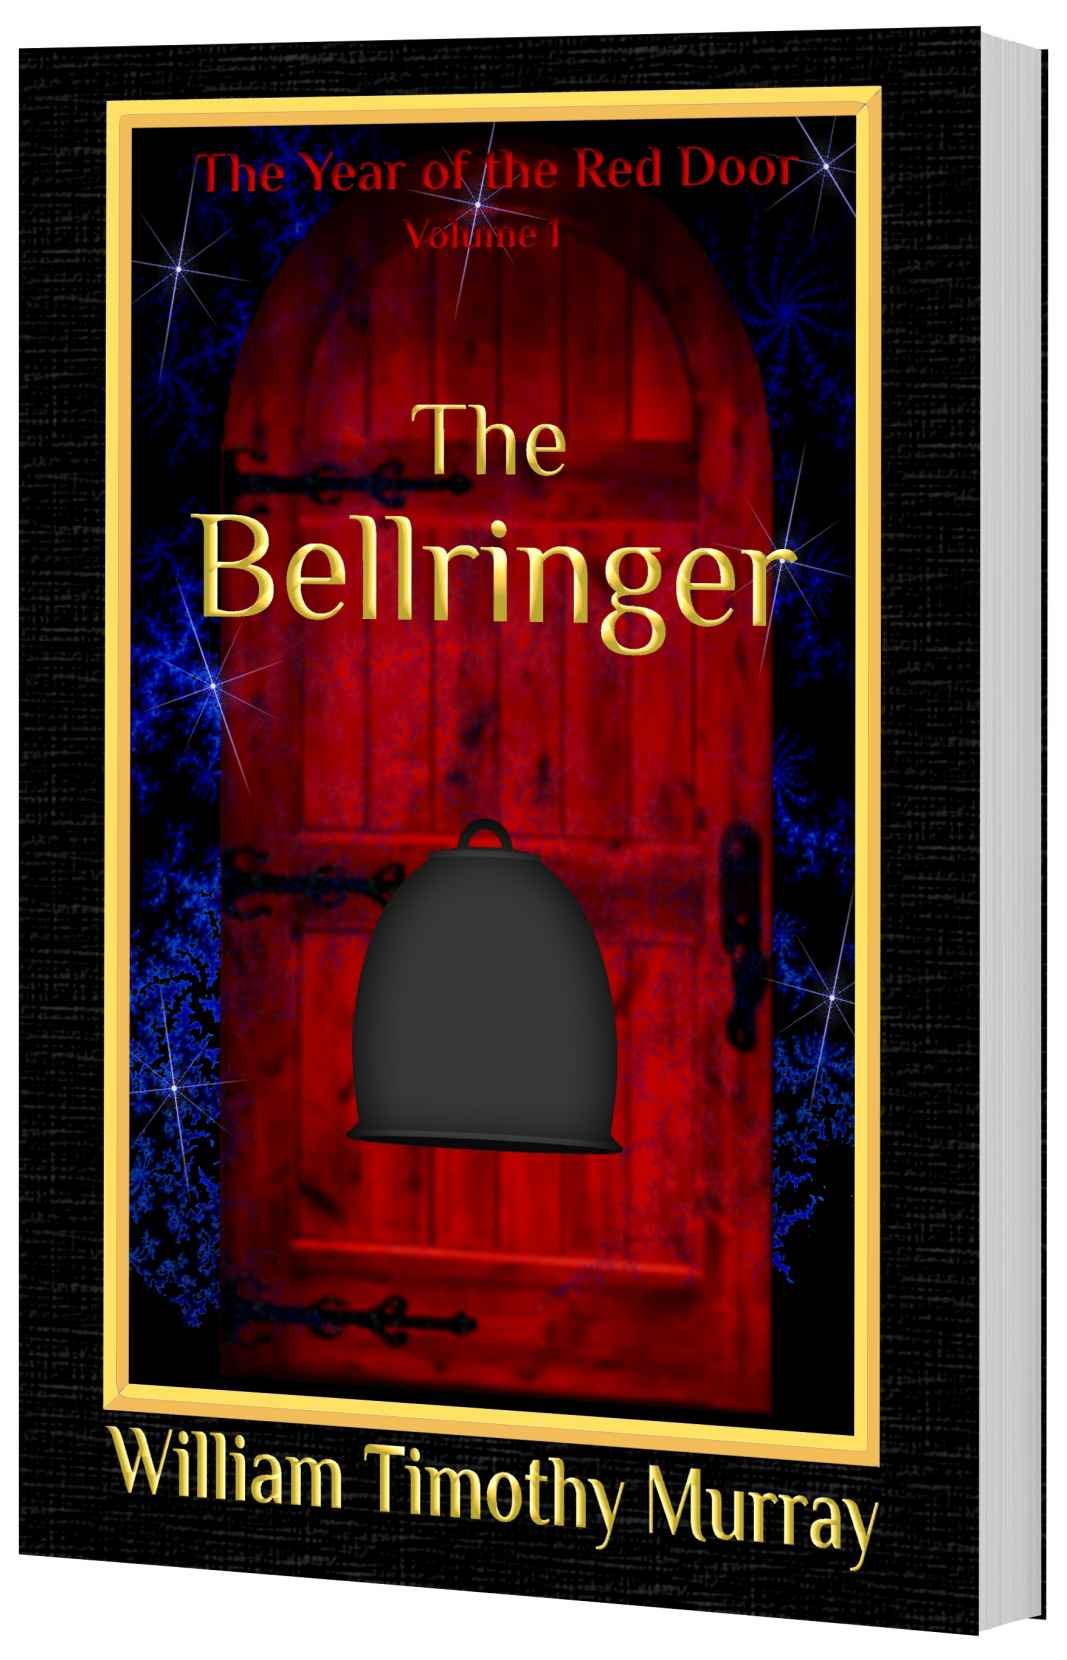 The Bellringer Volume 1 Of The Year Of The Red Door Lousy Book Covers